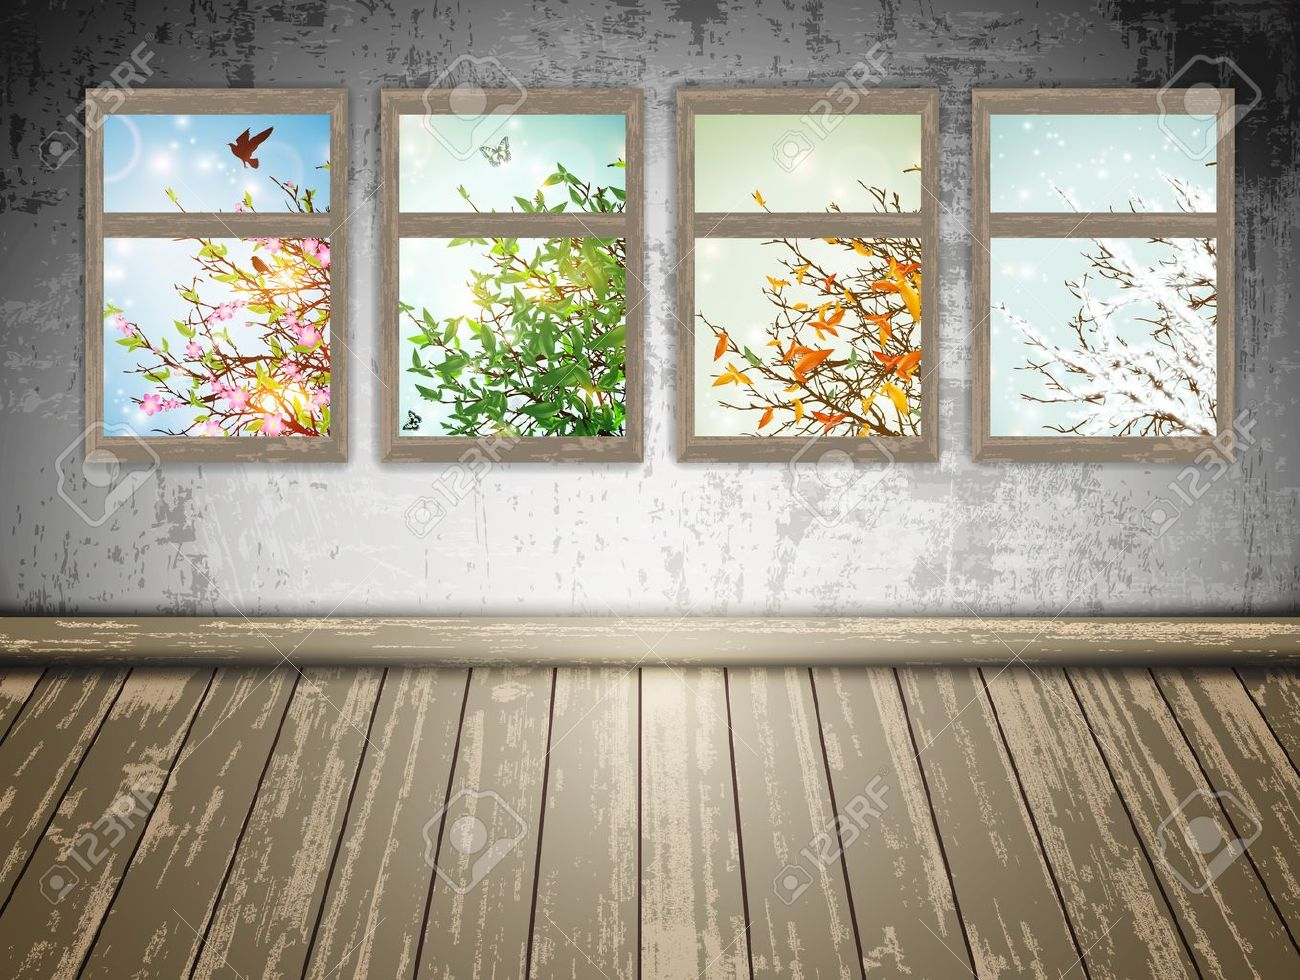 abandoned room with a Four Season windows: spring, summer, autumn and winter - 14404525